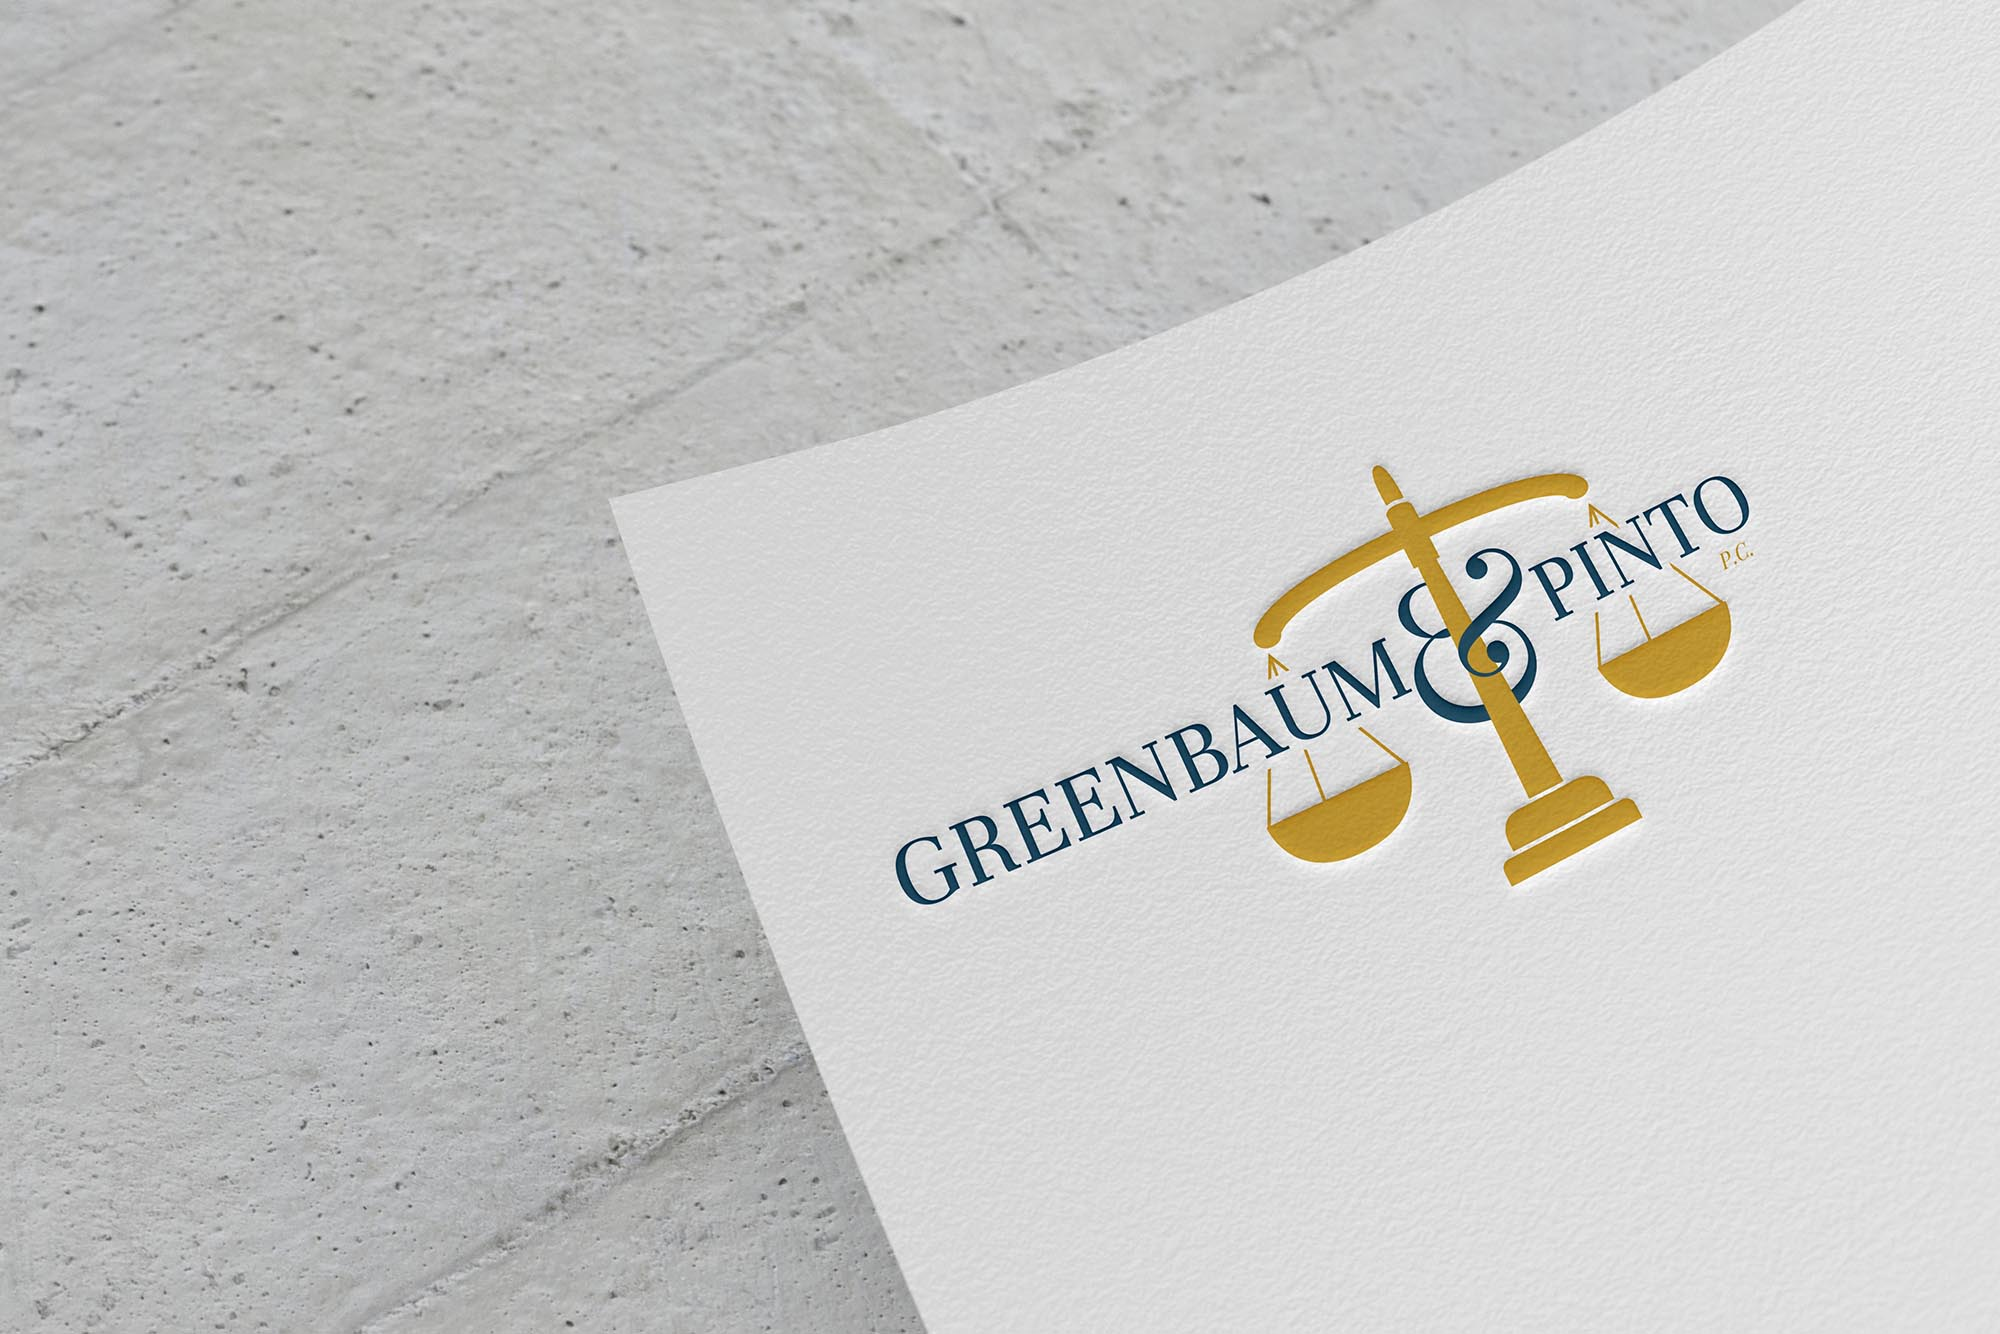 greenbaum logo mocked up on paper